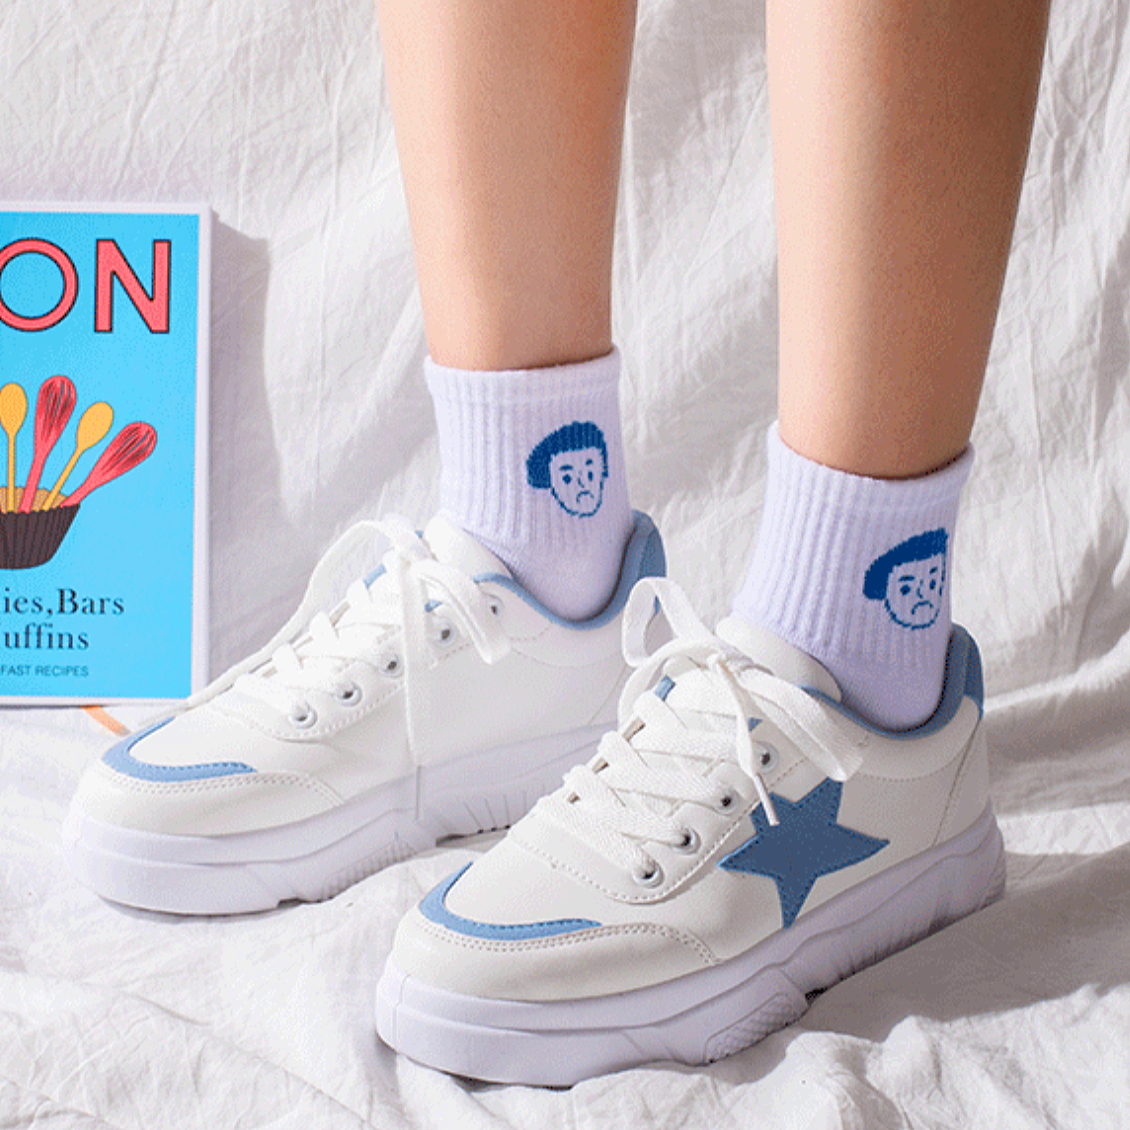 ONE STAR SNEAKERS   Aesthetic shoes